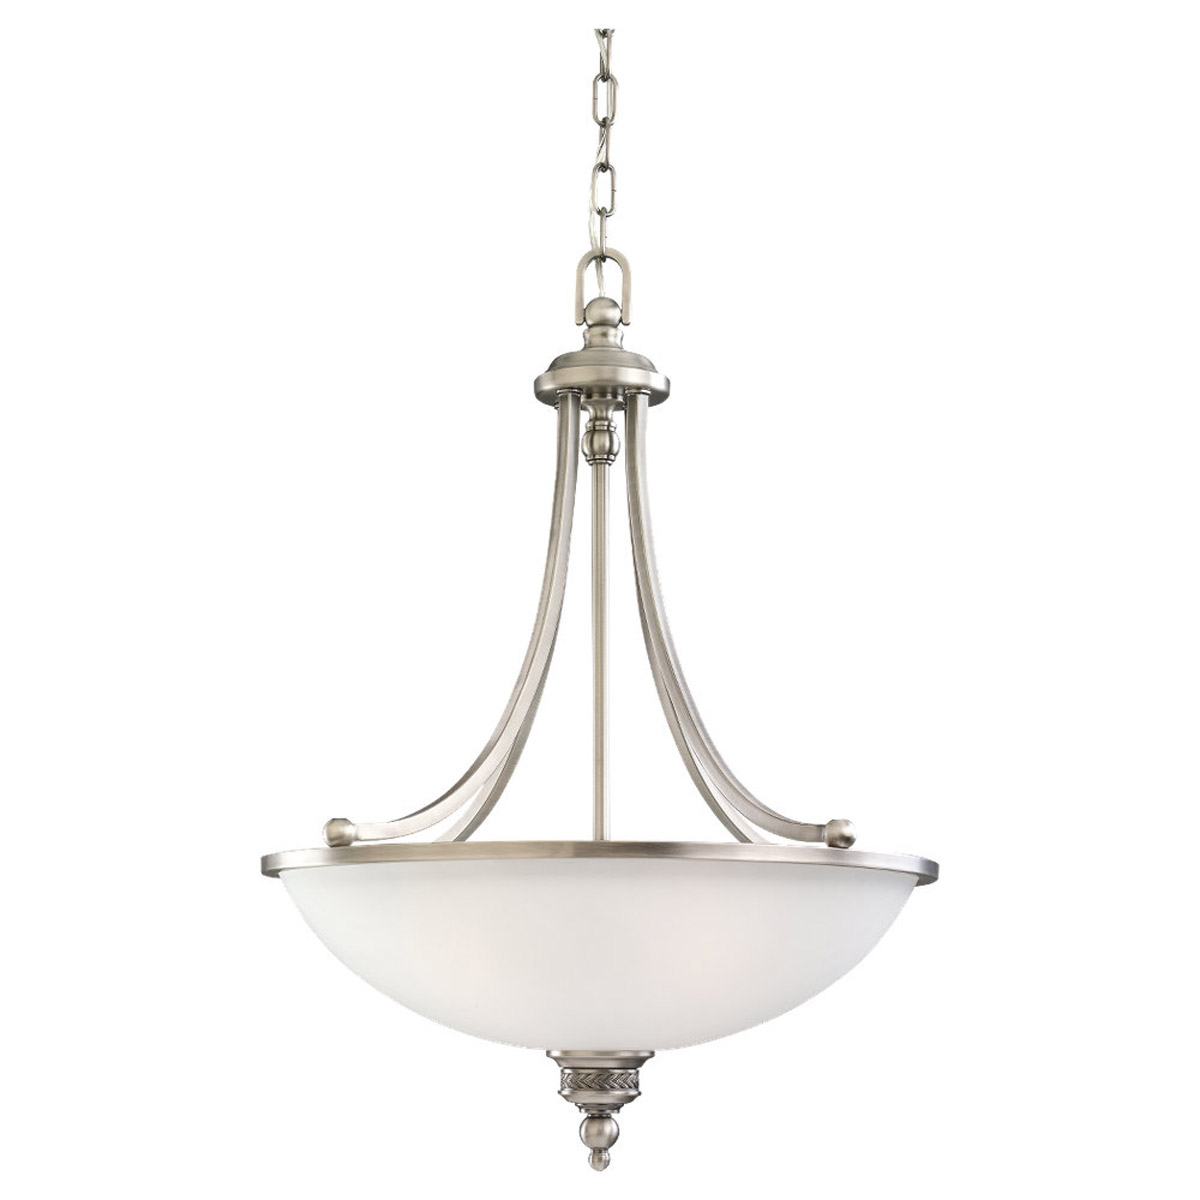 Sea Gull 65351-965 Laurel Leaf 3 Light 20 inch Antique Brushed Nickel Pendant Ceiling Light photo